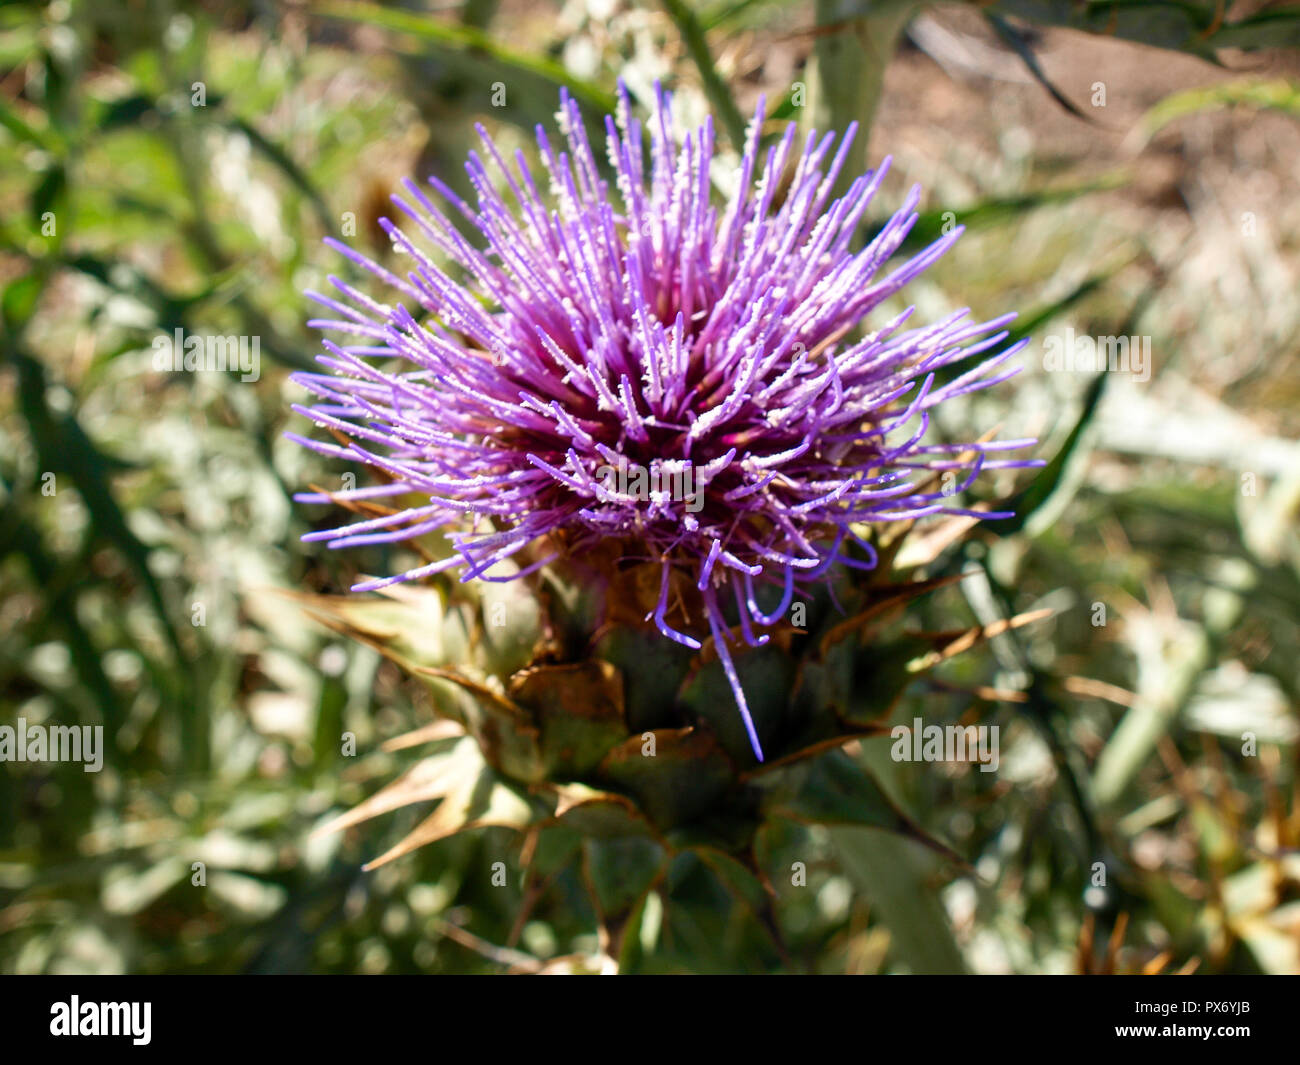 Lanzarote, Spain - June 4, 2017: Plant and wild flower - Stock Image